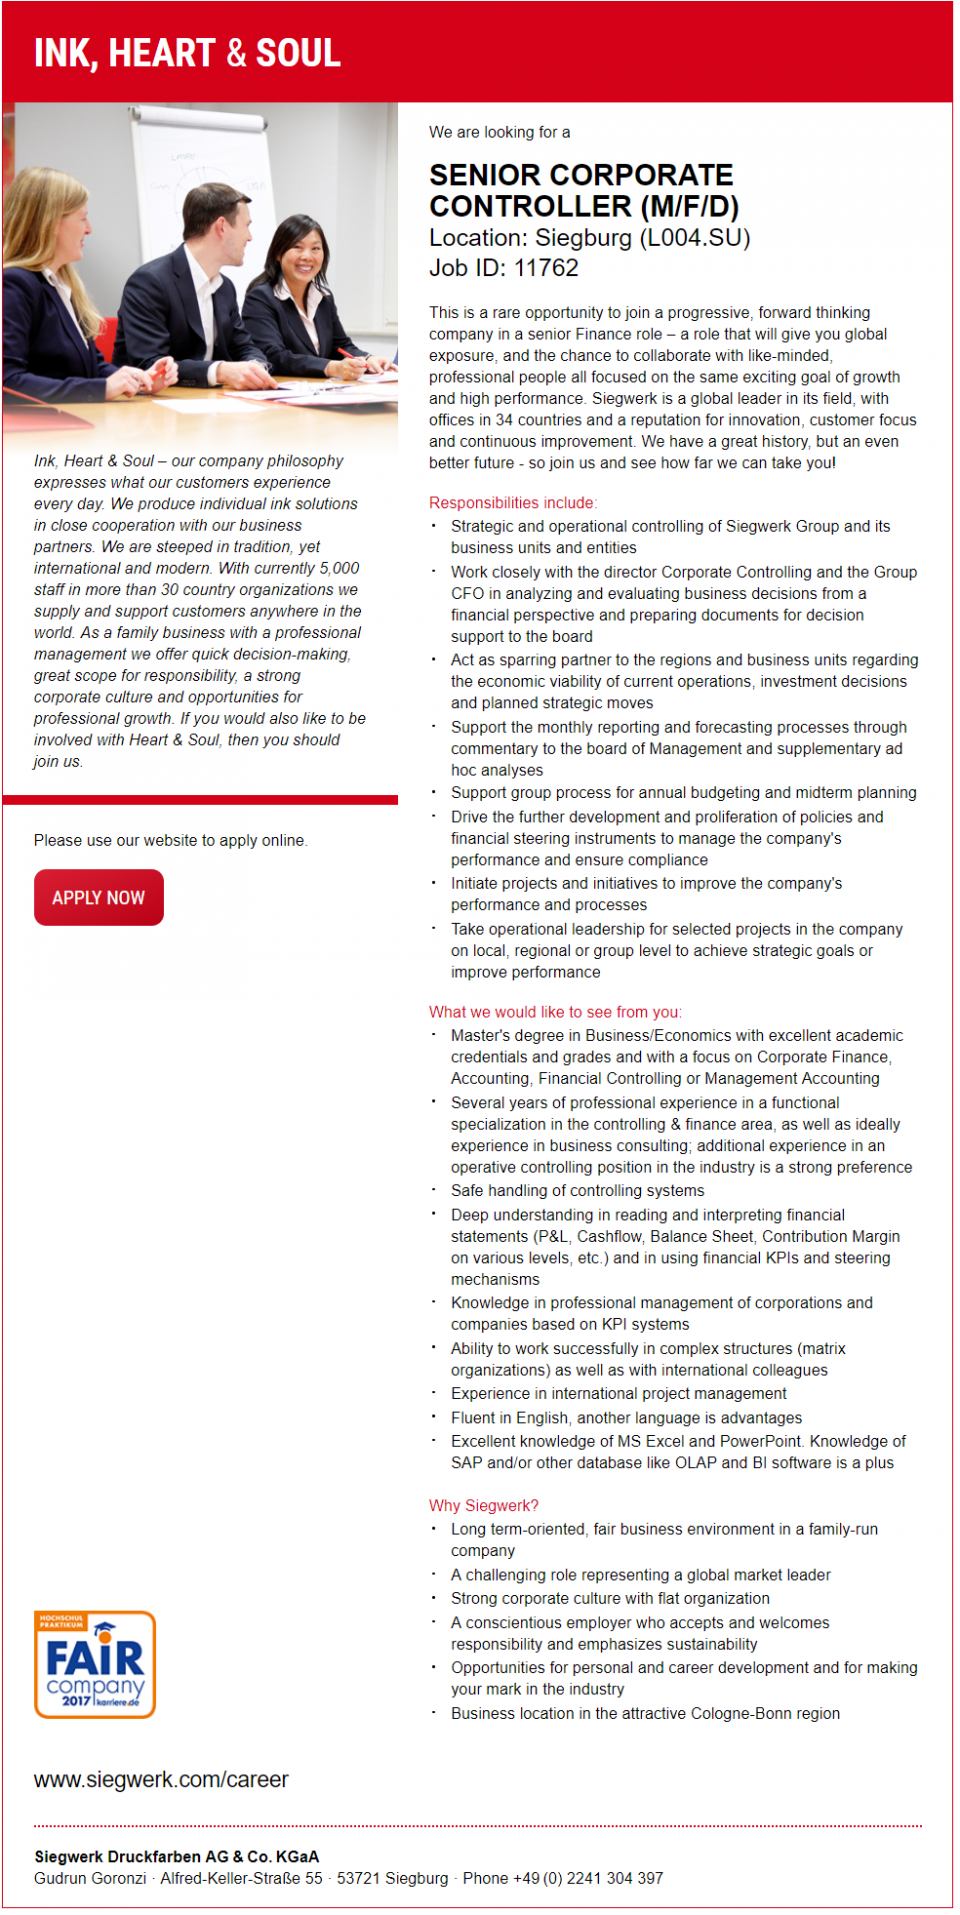 We are looking for a  SENIOR CORPORATE CONTROLLER (M/F/D) Location: Siegburg (L004.SU) Job ID: 11762  This is a rare opportunity to join a progressive, forward thinking company in a senior Finance role – a role that will give you global exposure, and the chance to collaborate with like-minded, professional people all focused on the same exciting goal of growth and high performance. Siegwerk is a global leader in its field, with offices in 34 countries and a reputation for innovation, customer focus and continuous improvement. We have a great history, but an even better future - so join us and see how far we can take you!  Responsibilities include:  Strategic and operational controlling of Siegwerk Group and its business units and entities Work closely with the director Corporate Controlling and the Group CFO in analyzing and evaluating business decisions from a financial perspective and preparing documents for decision support to the board Act as sparring partner to the regions and business units regarding the economic viability of current operations, investment decisions and planned strategic moves Support the monthly reporting and forecasting processes through commentary to the board of Management and supplementary ad hoc analyses Support group process for annual budgeting and midterm planning Drive the further development and proliferation of policies and financial steering instruments to manage the company's performance and ensure compliance Initiate projects and initiatives to improve the company's performance and processes Take operational leadership for selected projects in the company on local, regional or group level to achieve strategic goals or improve performance  What we would like to see from you:  Master's degree in Business/Economics with excellent academic credentials and grades and with a focus on Corporate Finance, Accounting, Financial Controlling or Management Accounting Several years of professional experience in a functional specialization in 